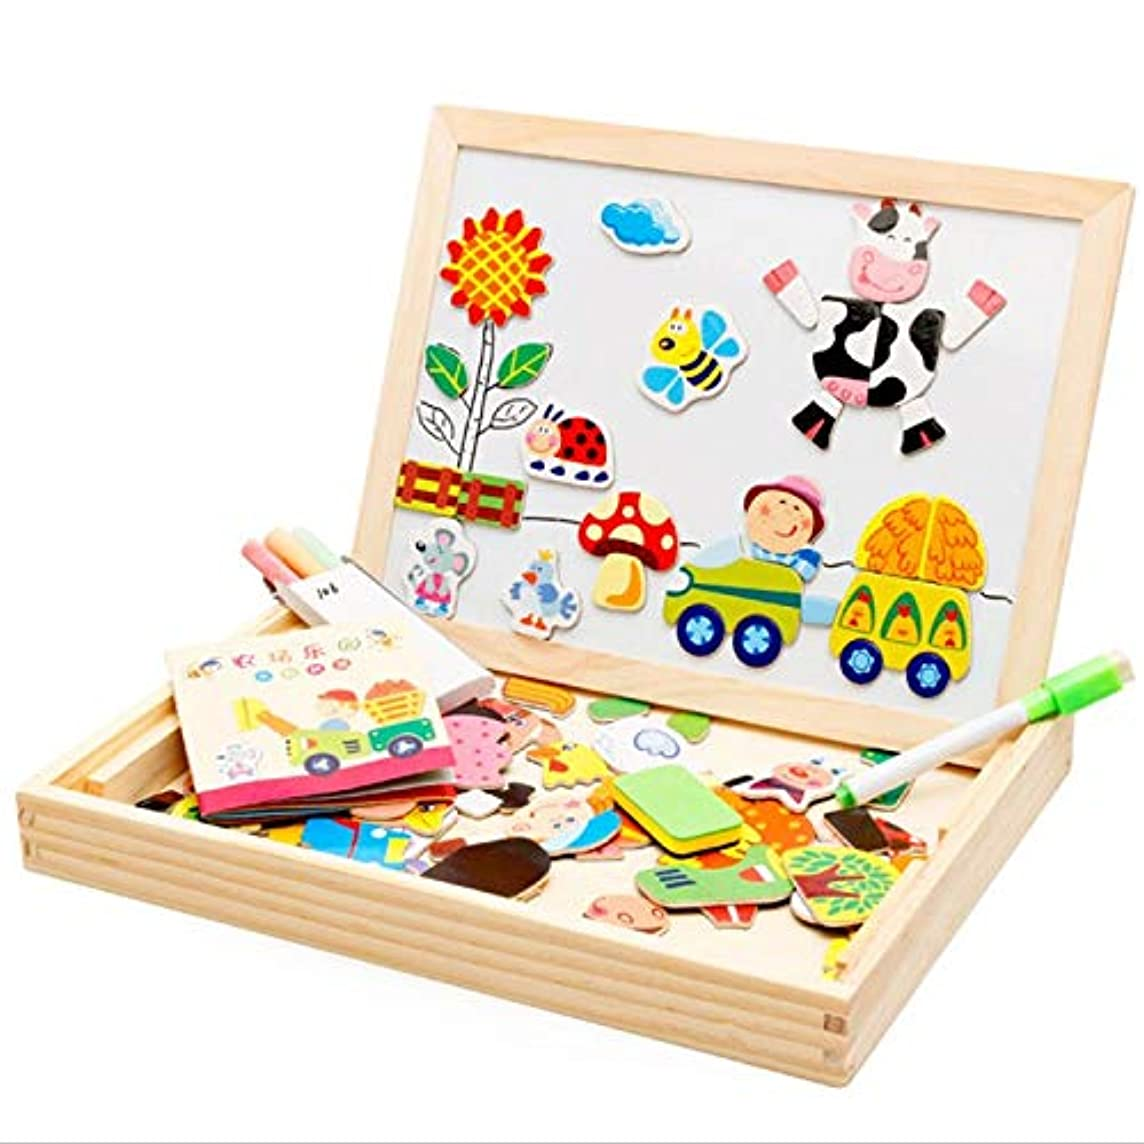 Mideer Puzzle - 4 Styles Multifunctional Magnetic Board Double Face Drawing Wooden Education Toys Erase Jigsaw - Hammer System Smarty Kindergarten Shapes Solar Building Coding Developmental